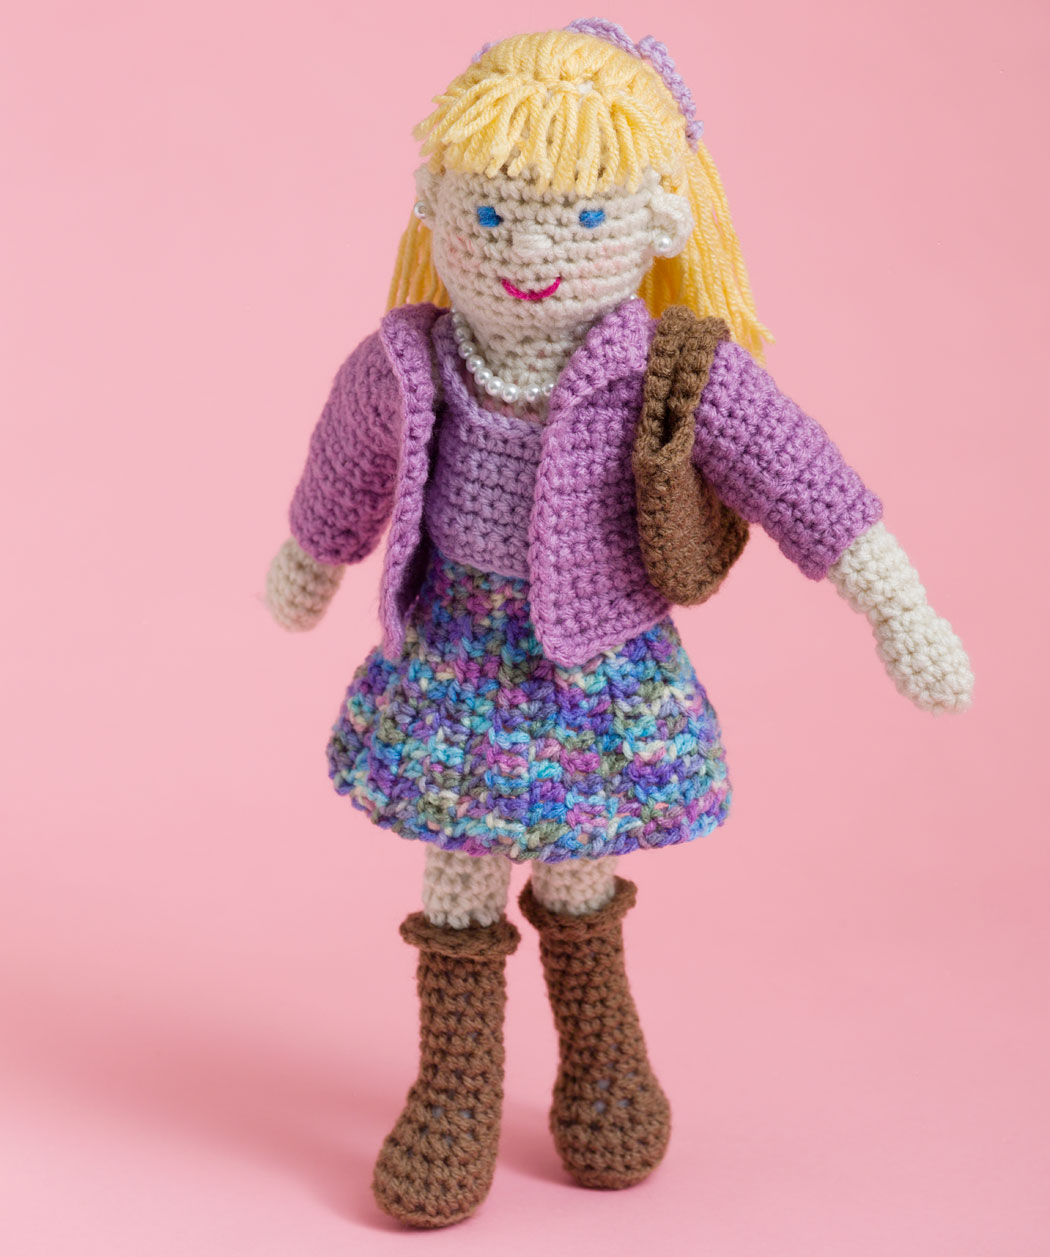 Crocheting Dolls : crochet pattern doll